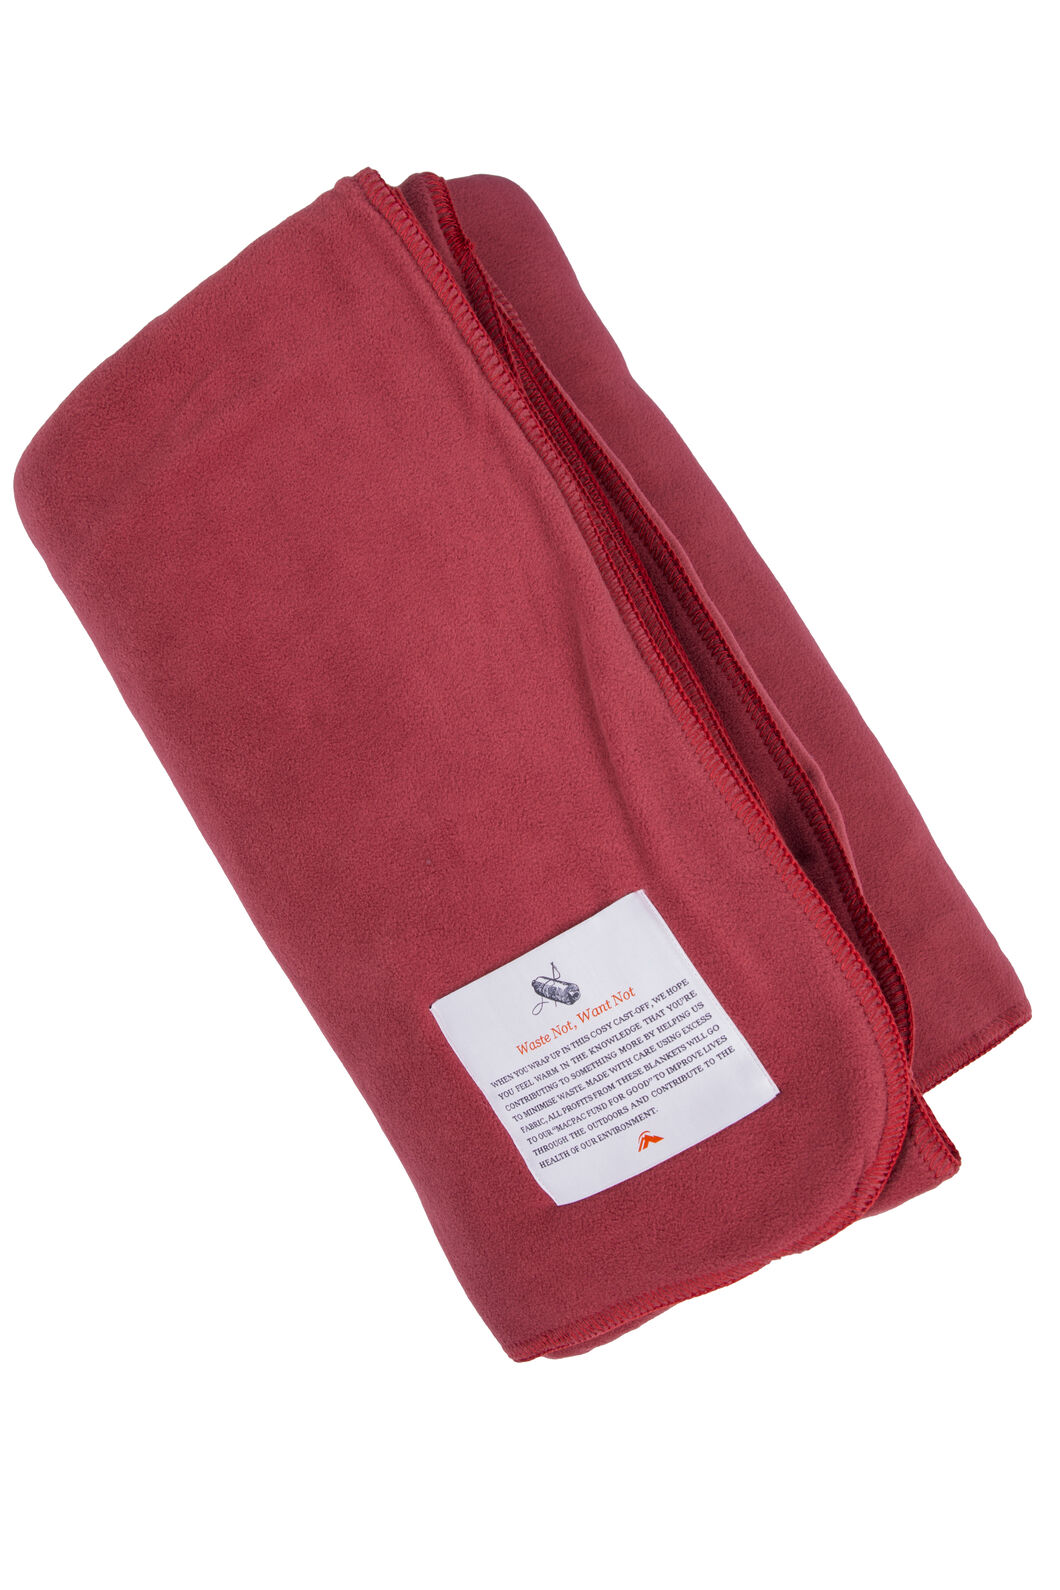 Macpac Fund for Good Blanket - Large, Assorted, hi-res